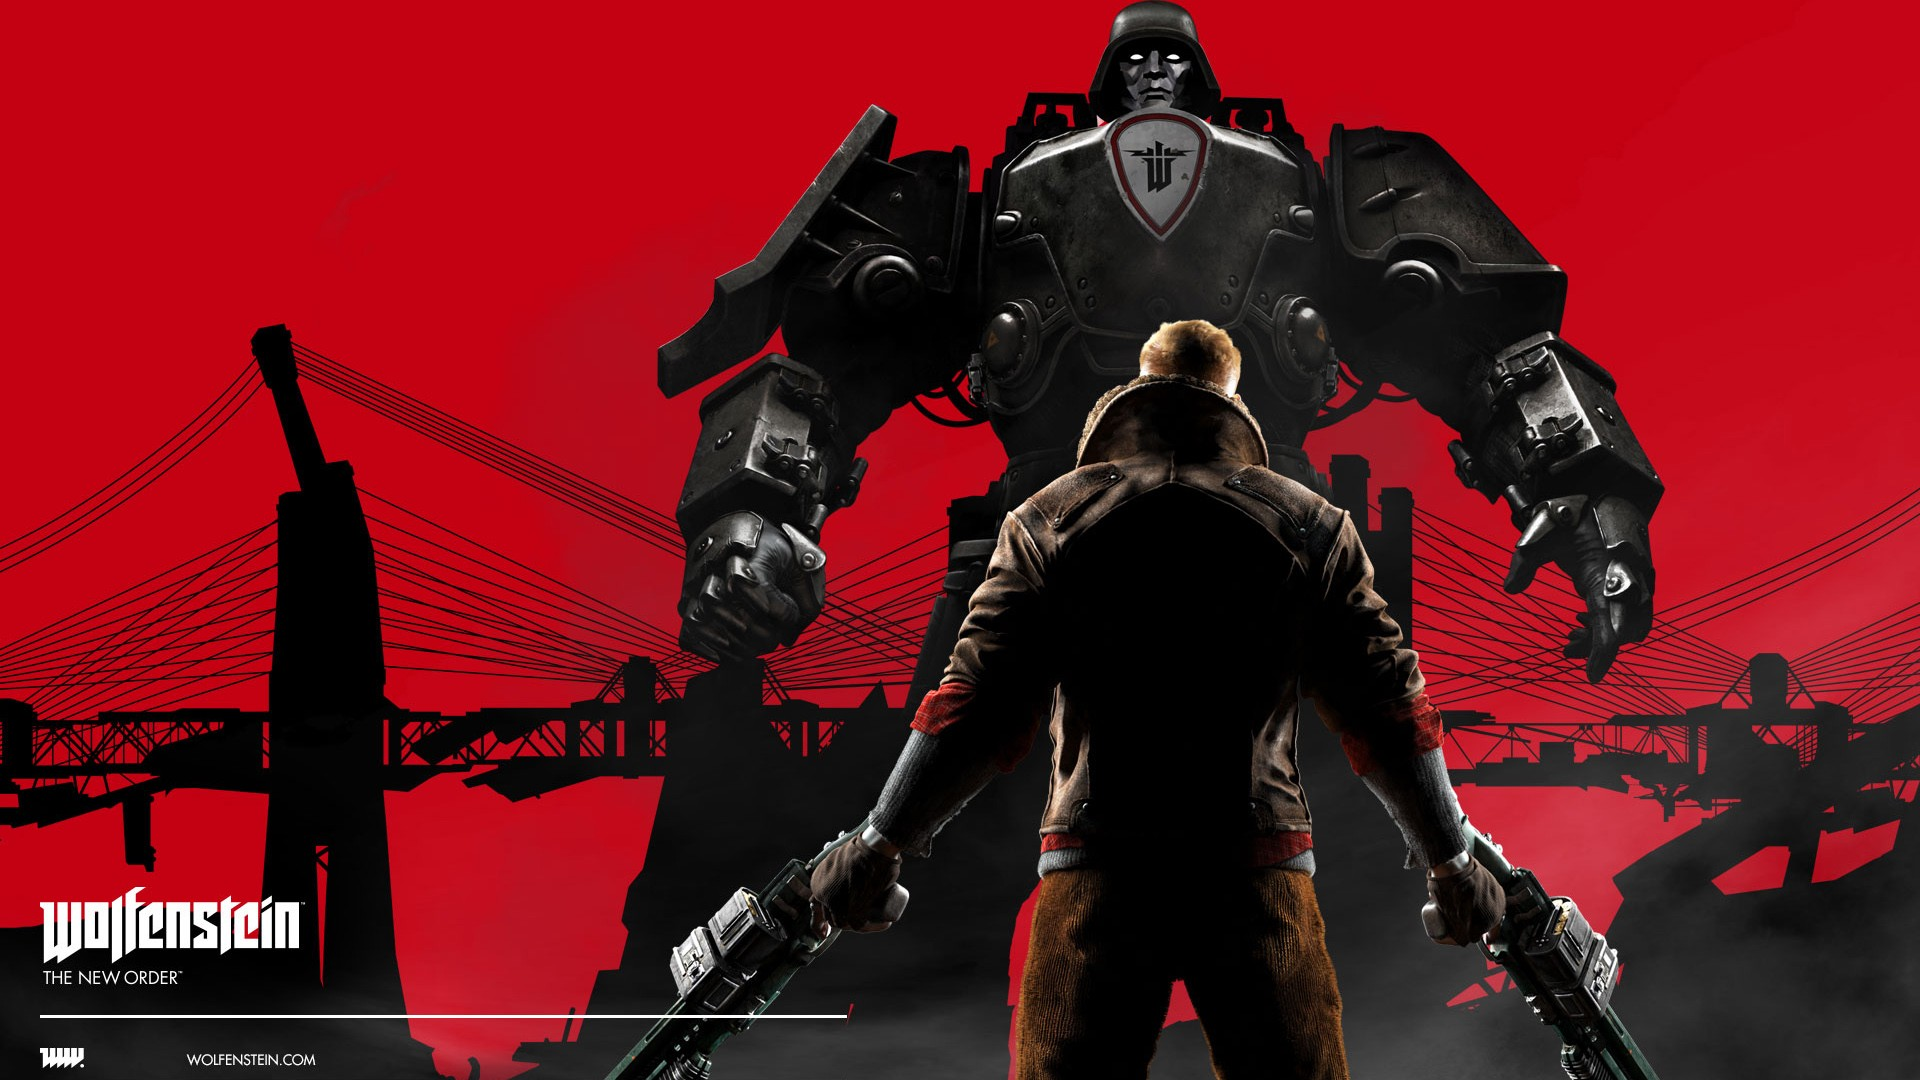 Red Star 3d Wallpaper 2014 Wolfenstein The New Order Wallpapers Hd Wallpapers